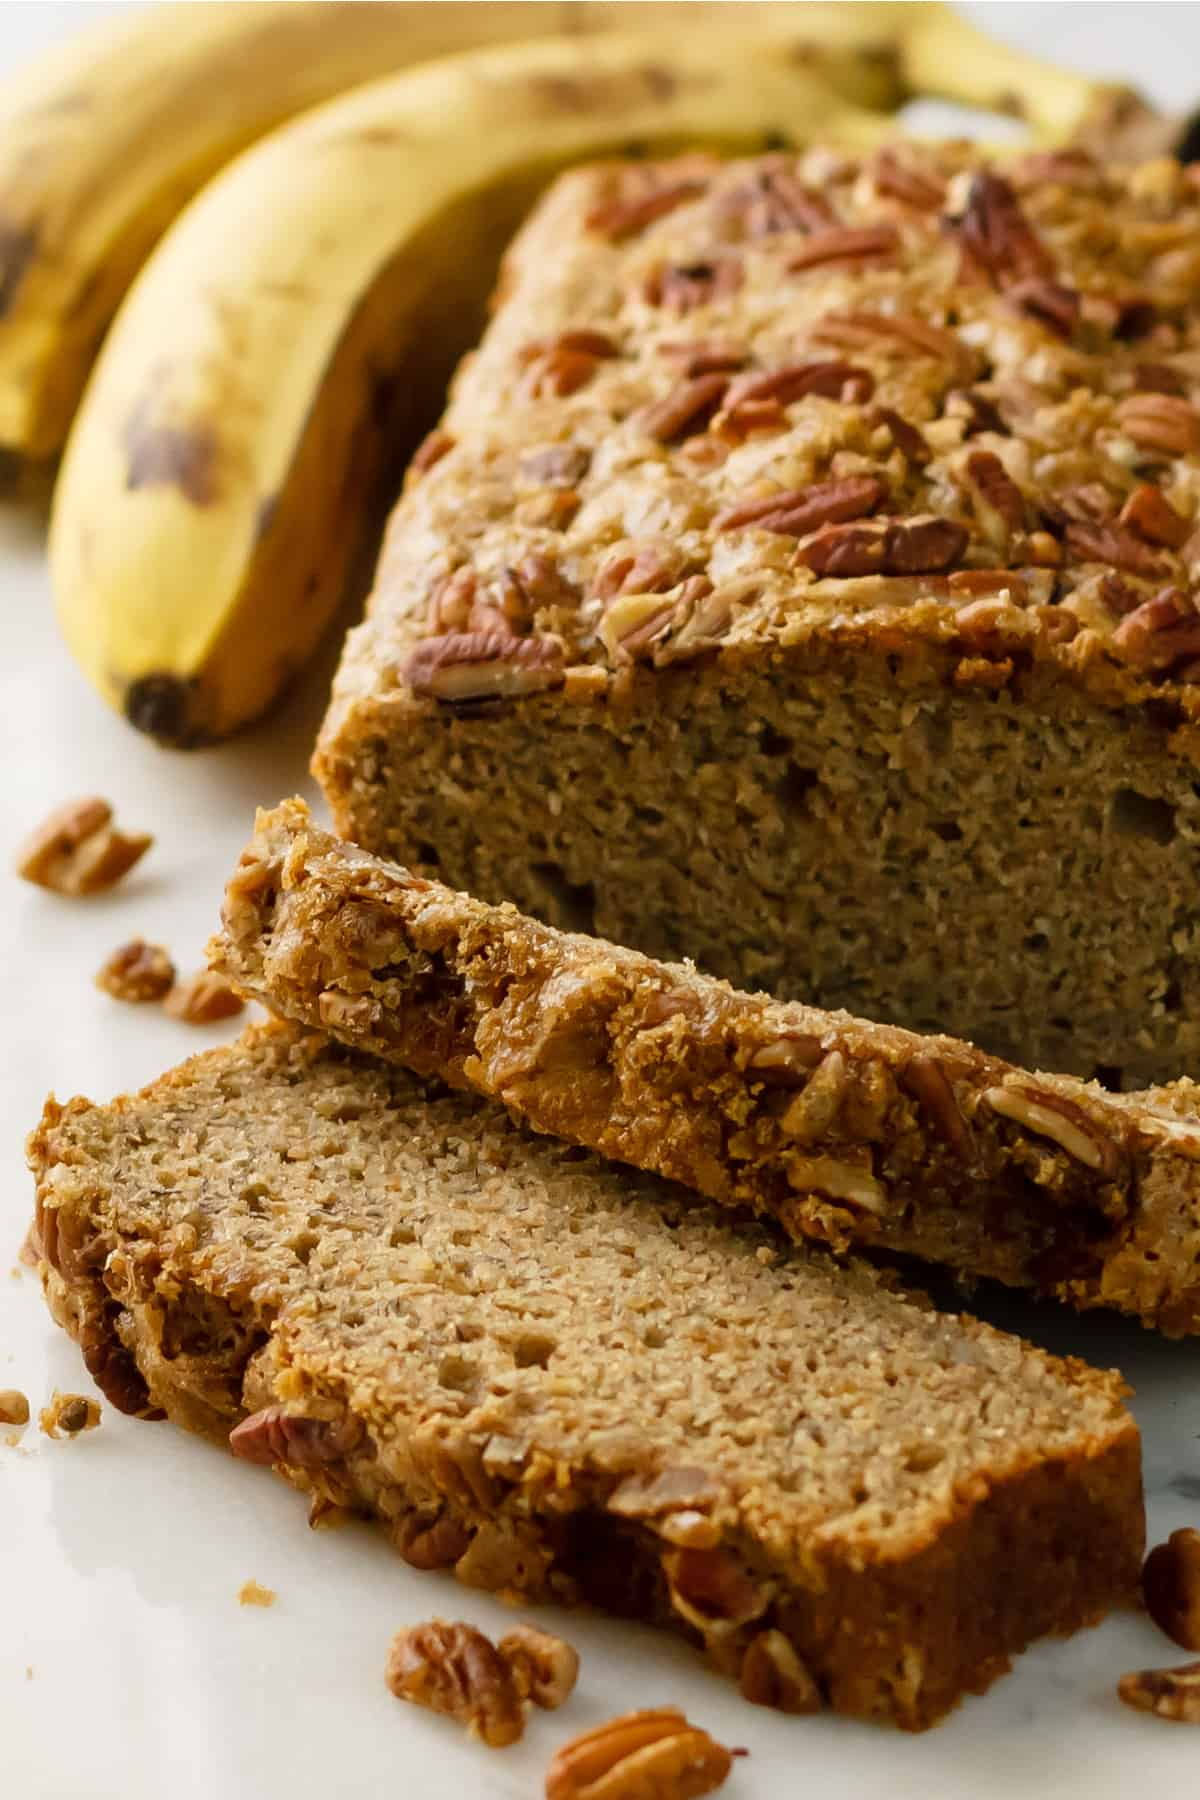 Dairy-free banana bread recipe sliced with ripe bananas in the background on a white table.